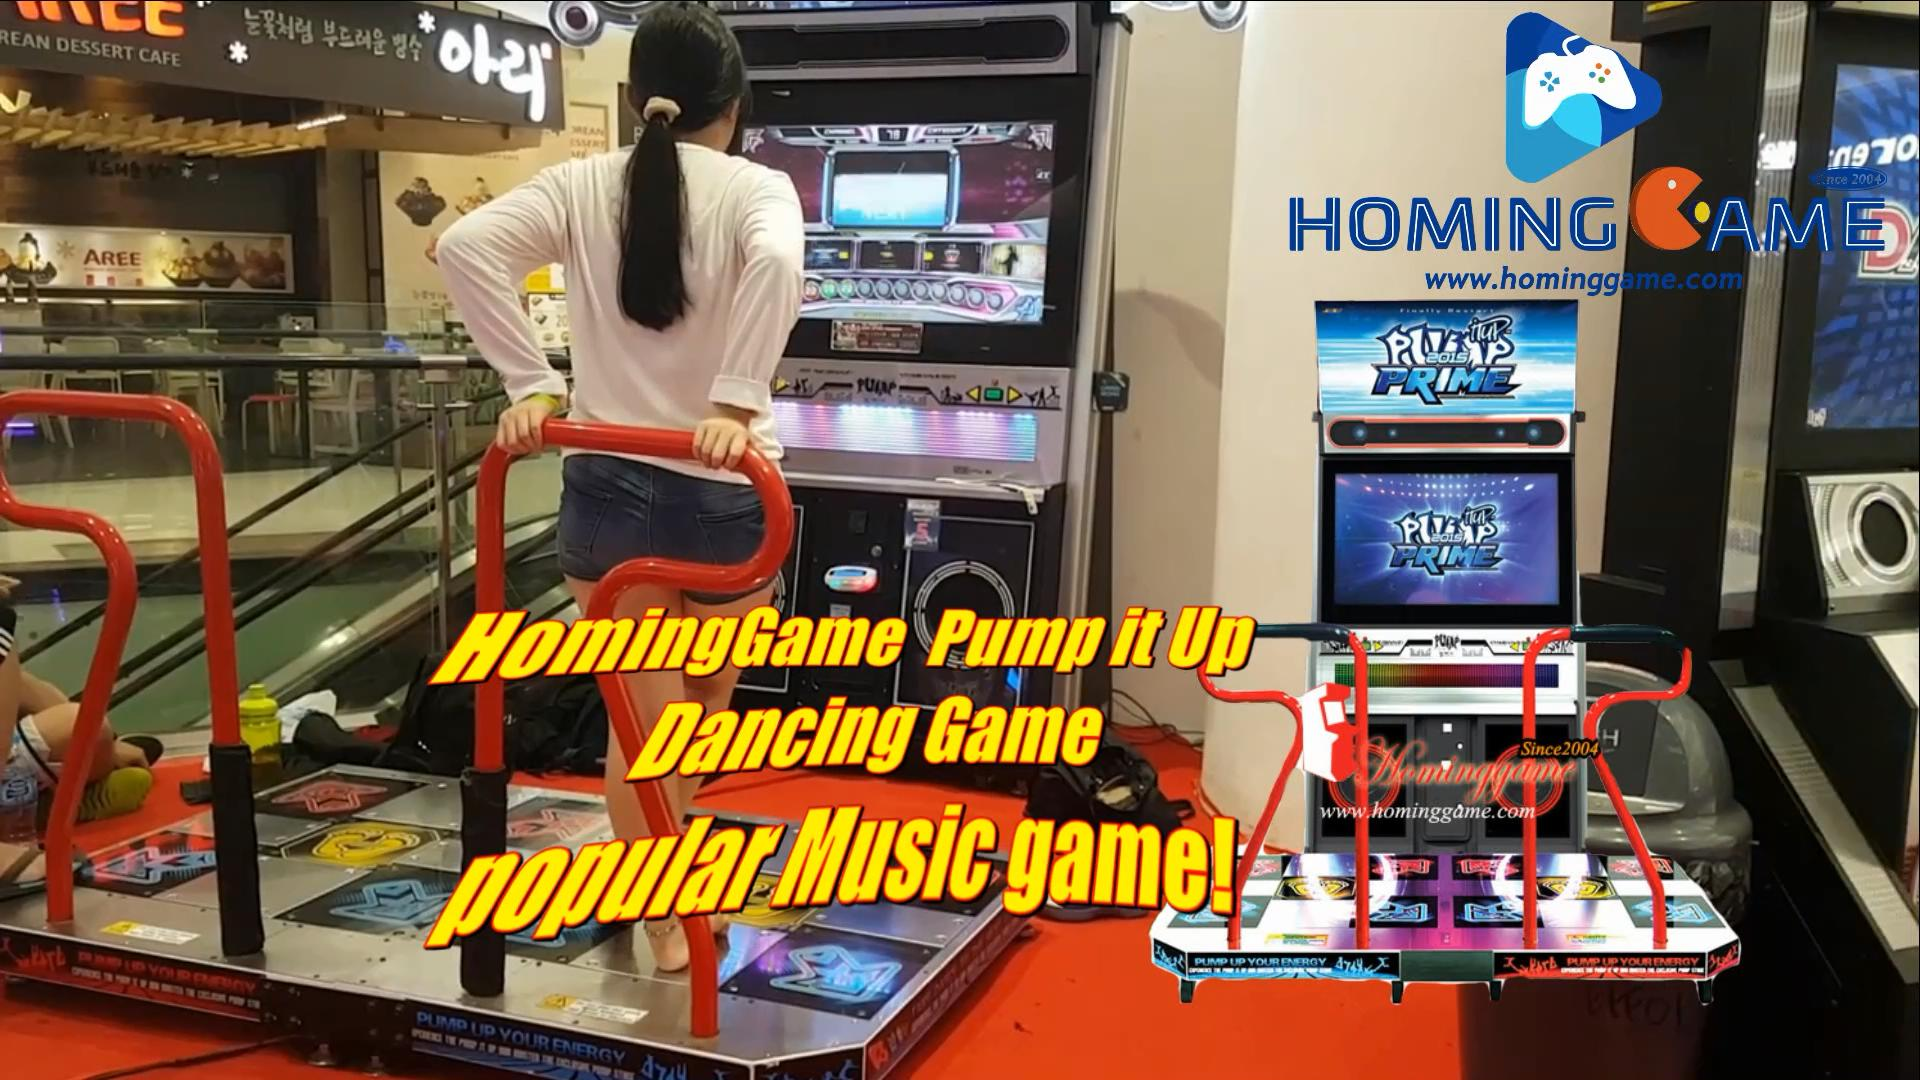 pump it up,pump it up dancing game machine,dancing game,pump it up game,dance pump it up,pump it up music game machine,game machine,arcade game machine,coin operated game machine,amusement park game machine,entertainment game machine,family entertainment,indoor game machine,sports game,hominggame,www.hominggame.com,gametube.hk,www.gametube.hk,pump it up  FIESTA EX,pump it up Fiesta ex dancing game macine,dancing music game machine,music game machine,music arcade game machine,dancing arcade game,dancing arcade,simulator game machine,video game machine,arcade video game machine,coin operated dancing game machine,dancing music game,hominggame dancing game machine